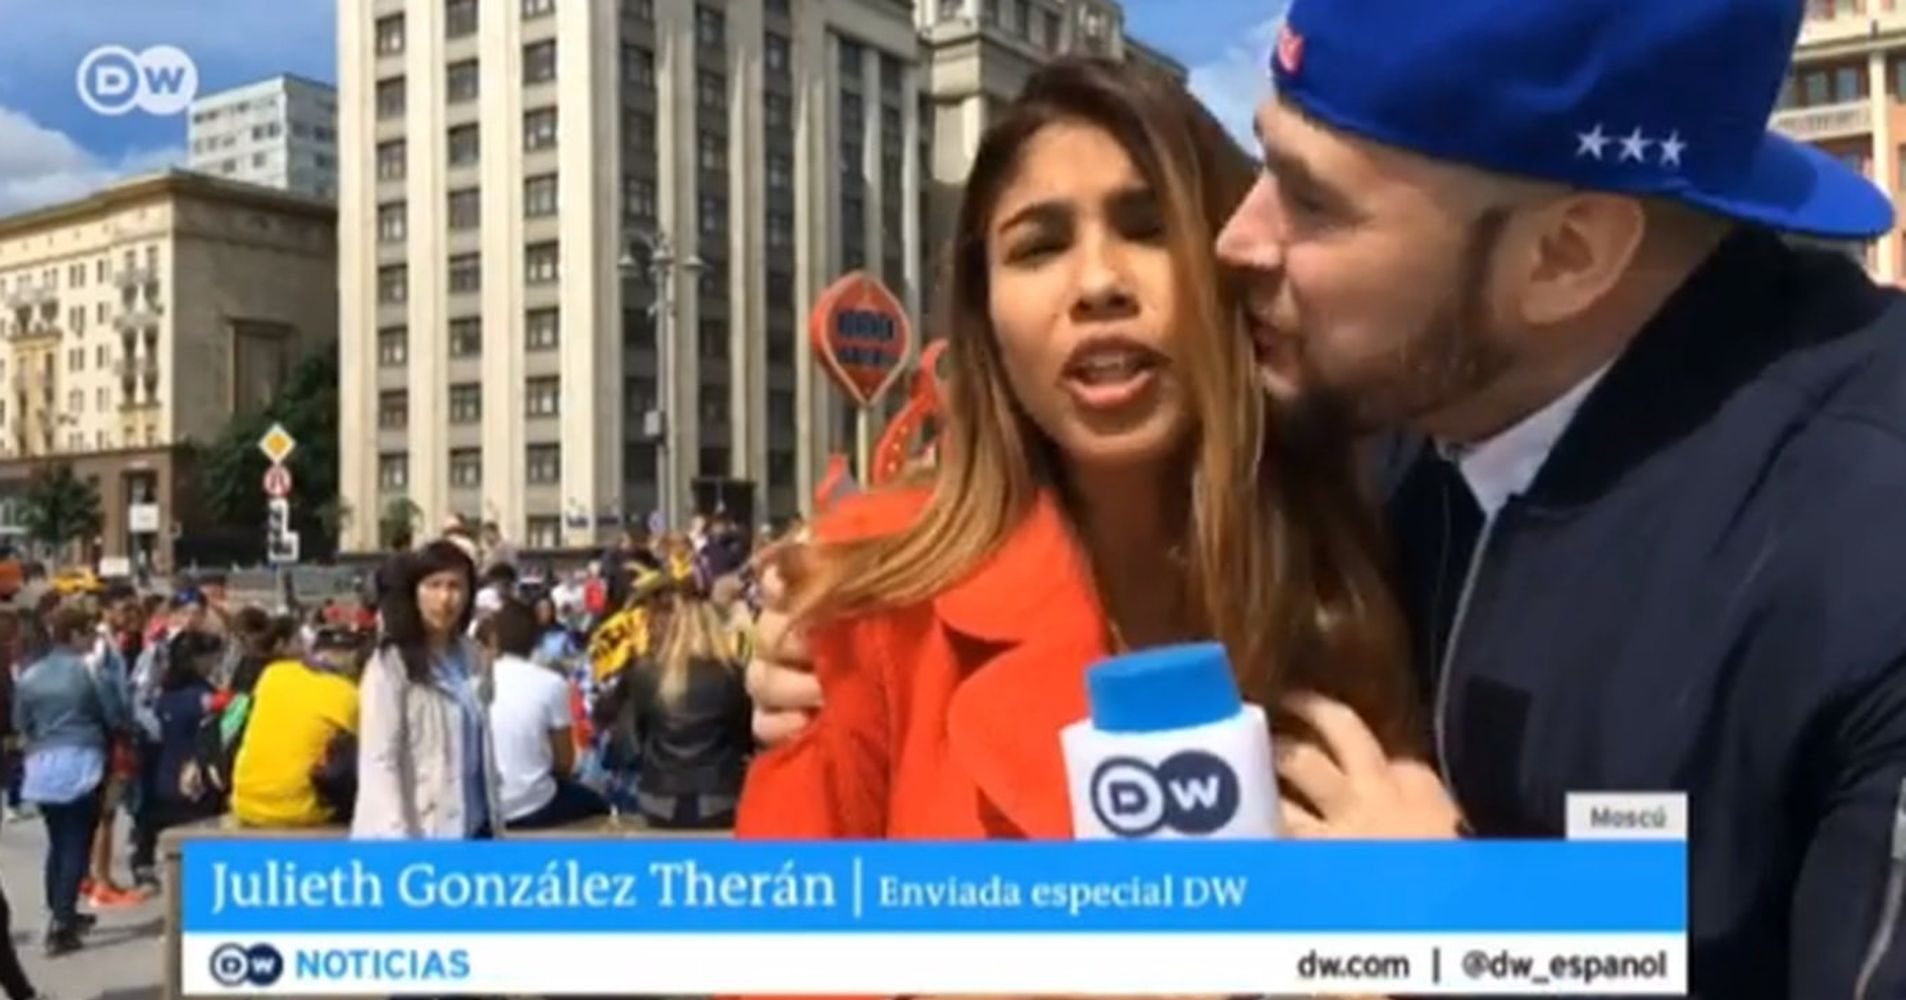 World Cup Reporter Sexually Harassed During Live Broadcast